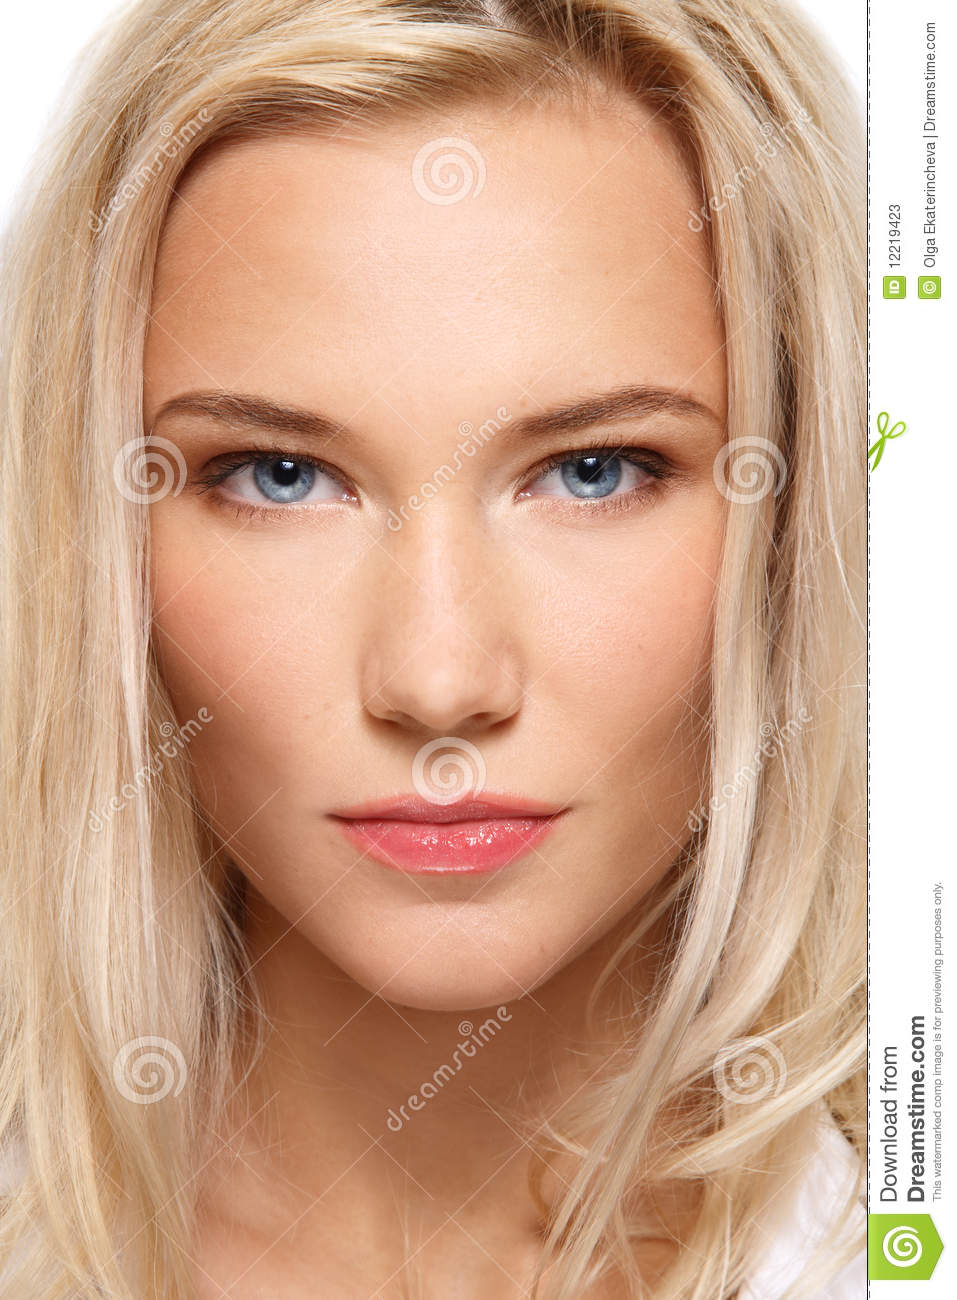 Close up portrait of beautiful blonde girl with clear make up